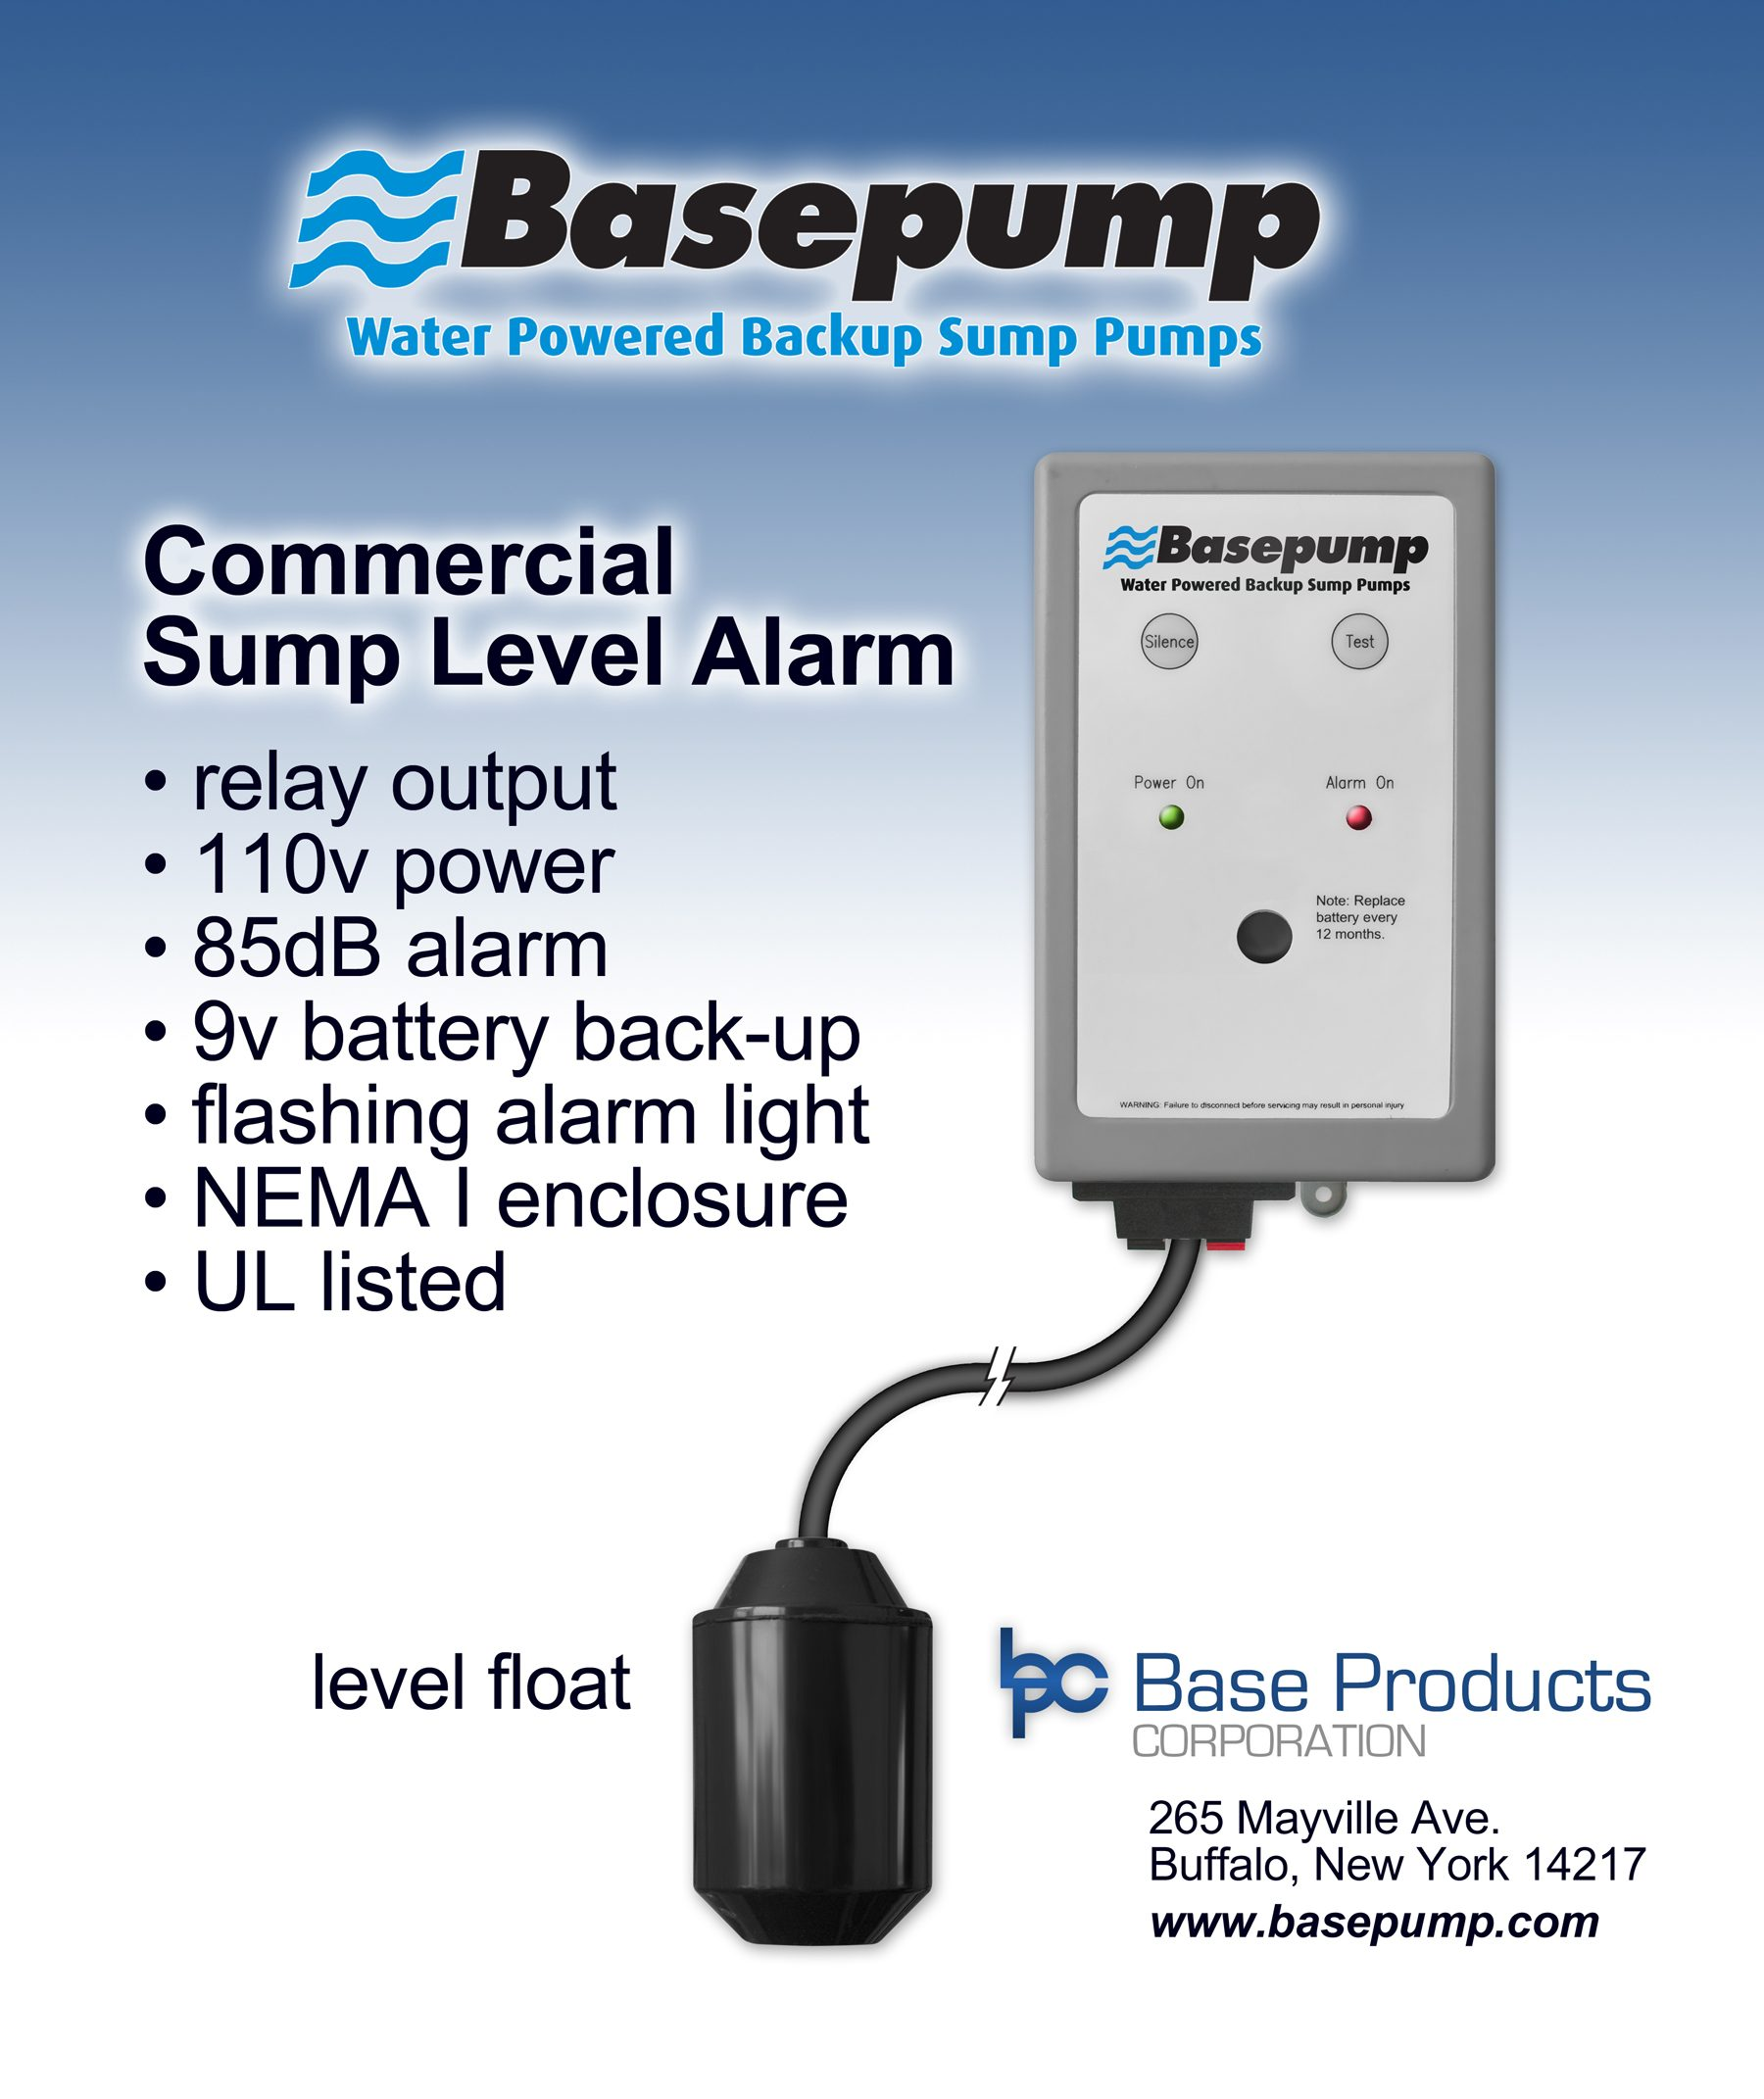 Basepump Commercial High Water Sump Level Alarm (SLA)